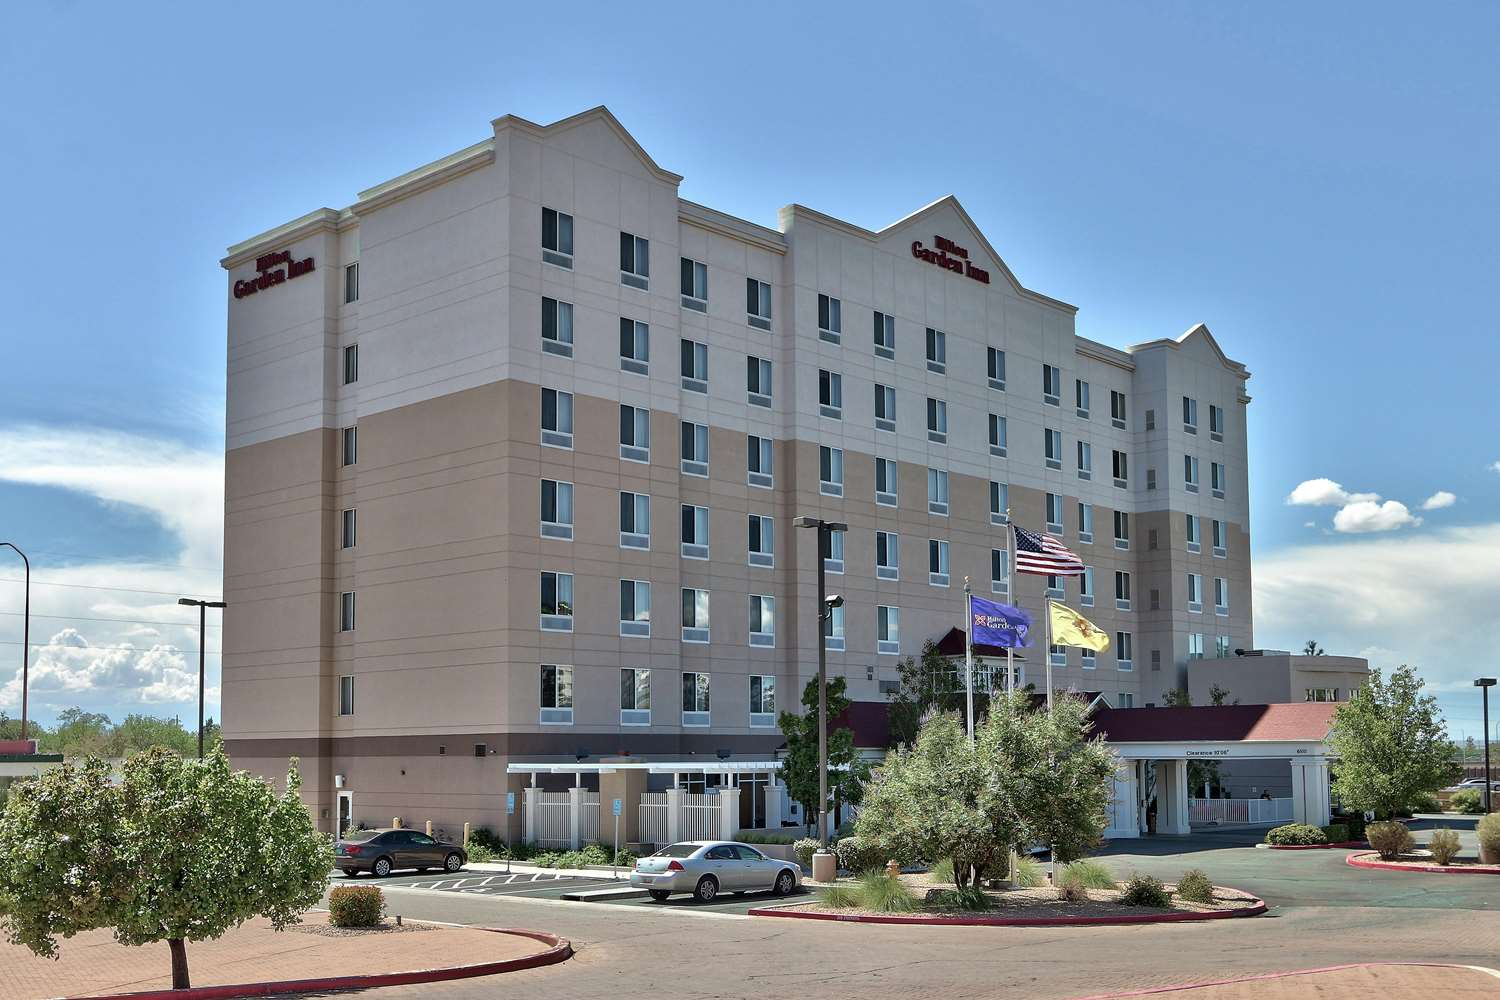 Hilton Garden Inn Uptown Albuquerque